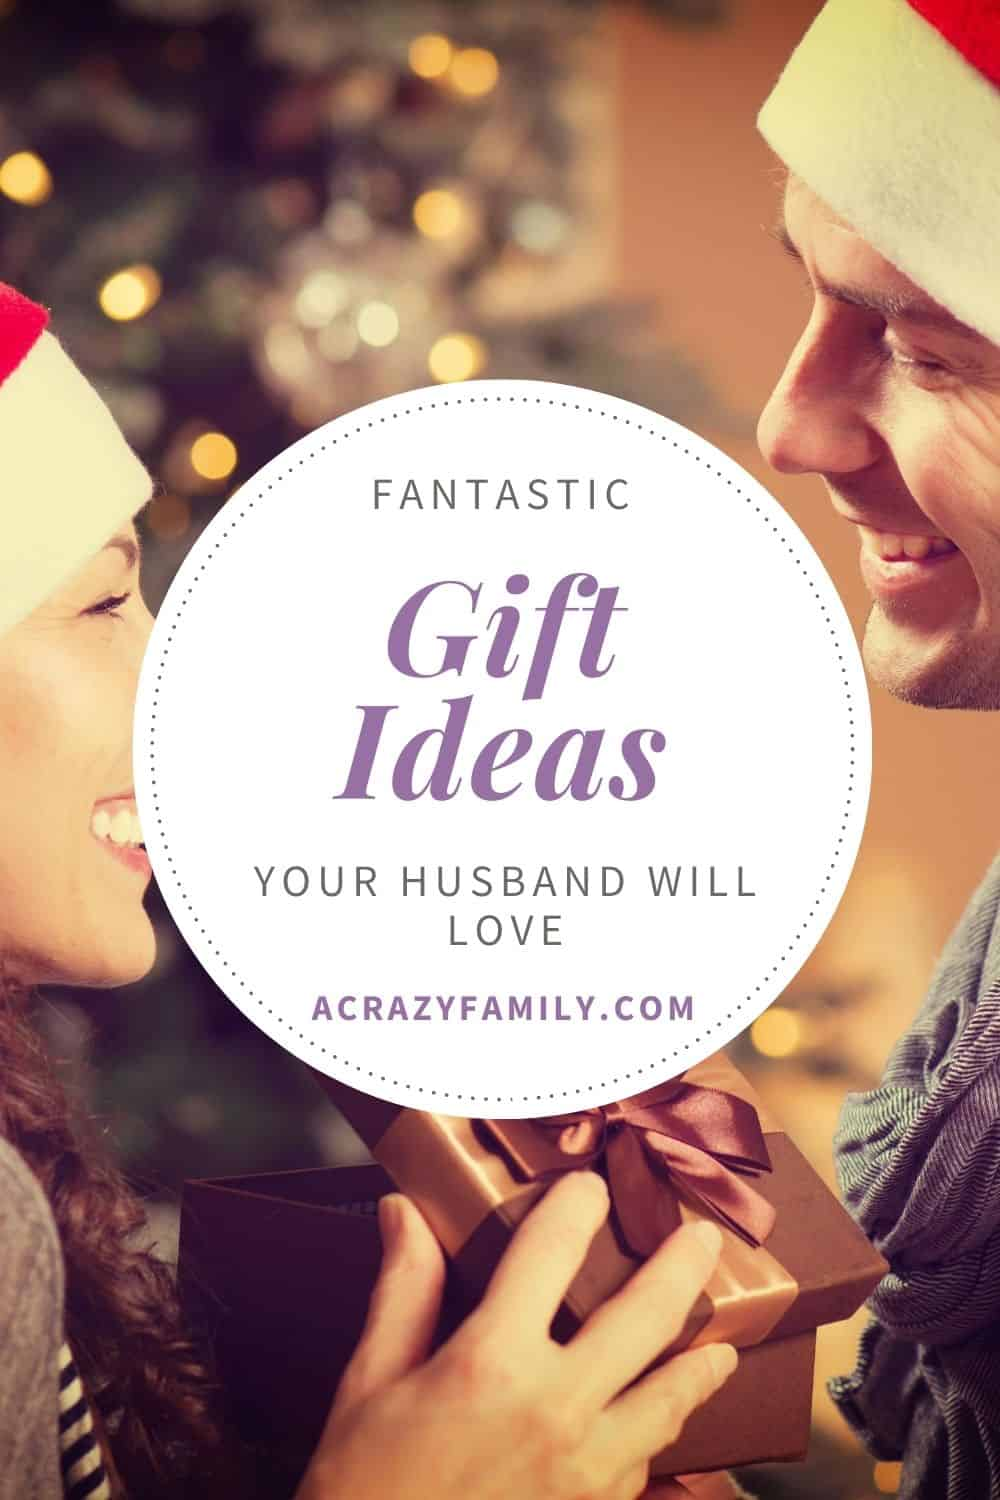 20 Best Gift Ideas For Husbands - Cool Gifts Your Husband Will Love